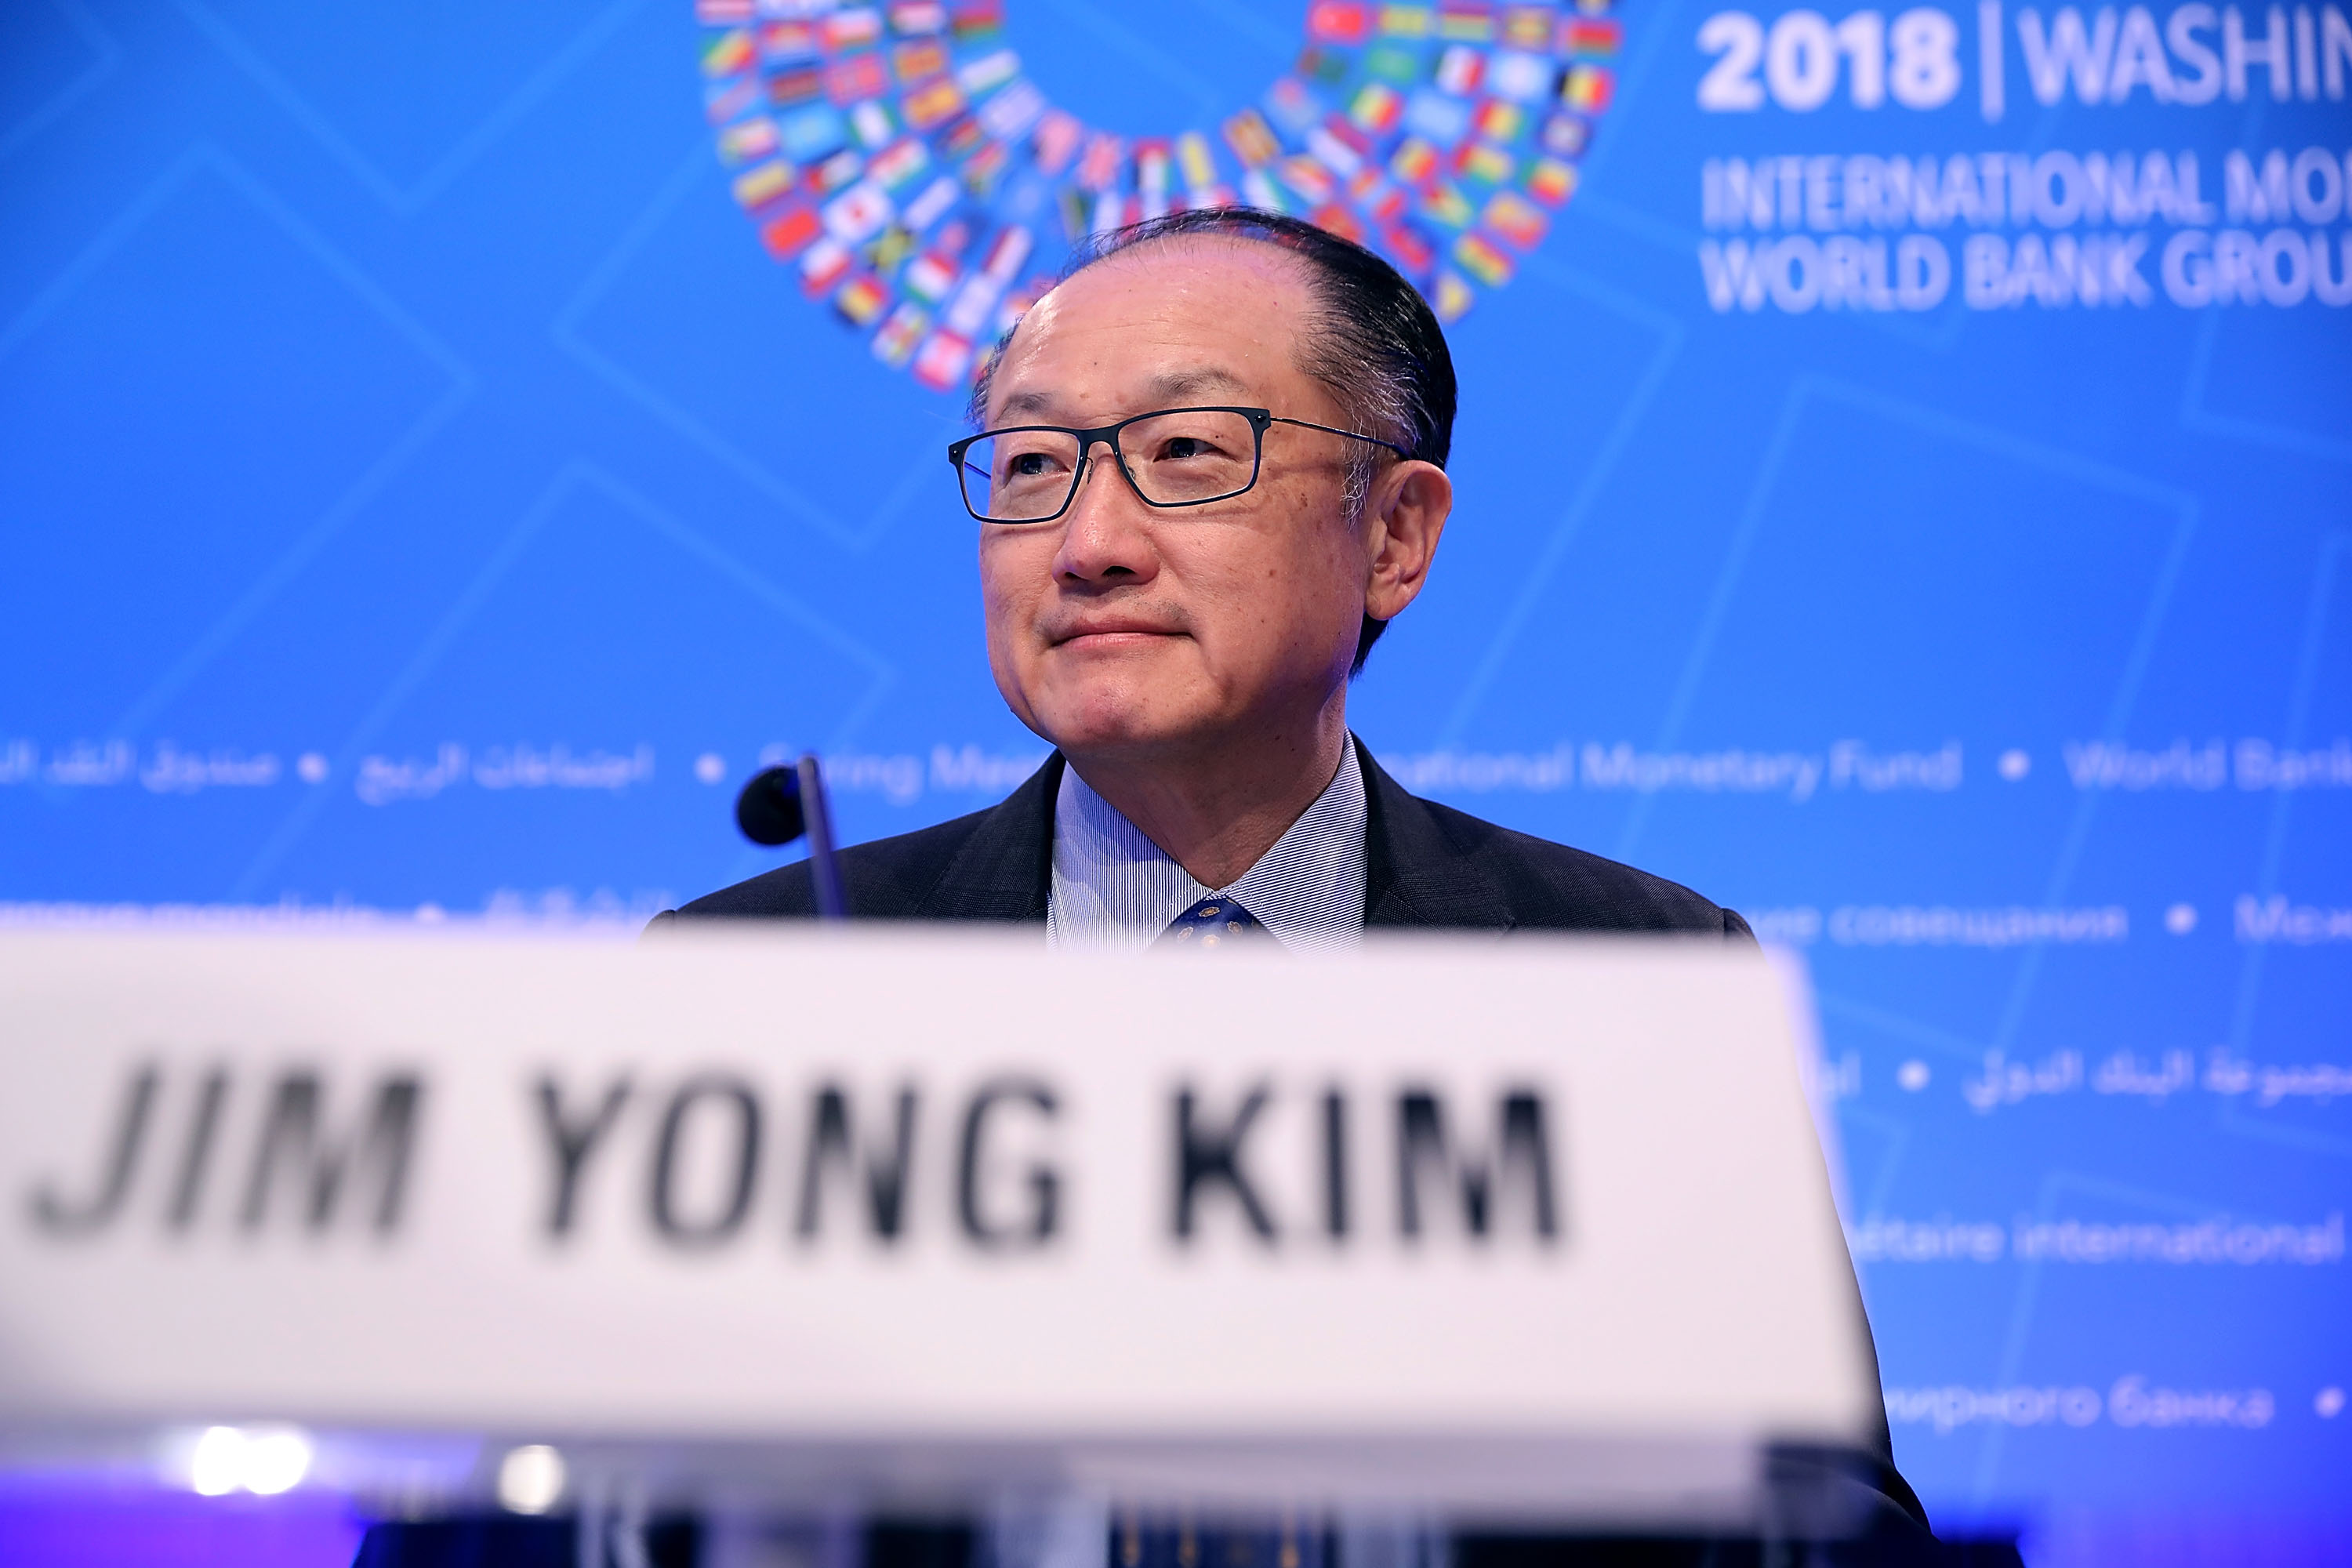 World Bank President Jim Yong Kim announced the new battery commitment on Wednesday. (Photo by Chip Somodevilla/Getty Images)